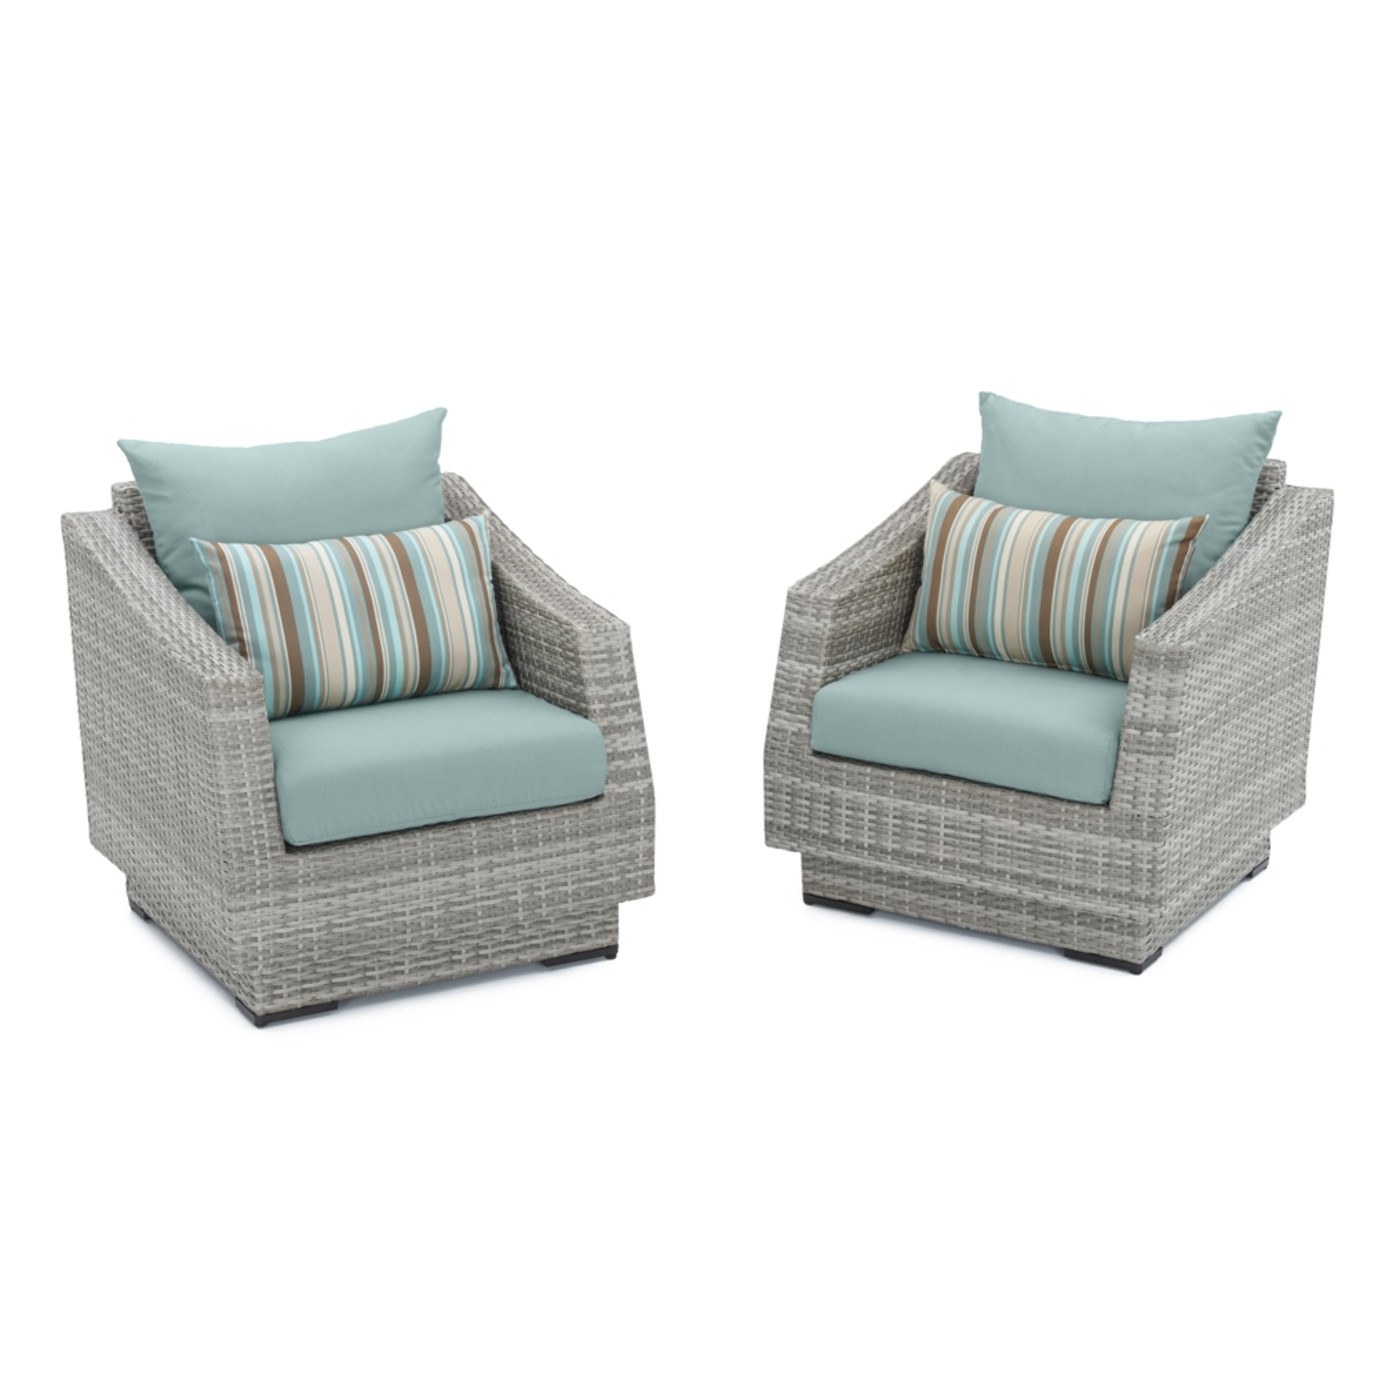 Cannes™ Club Chairs - Bliss Blue